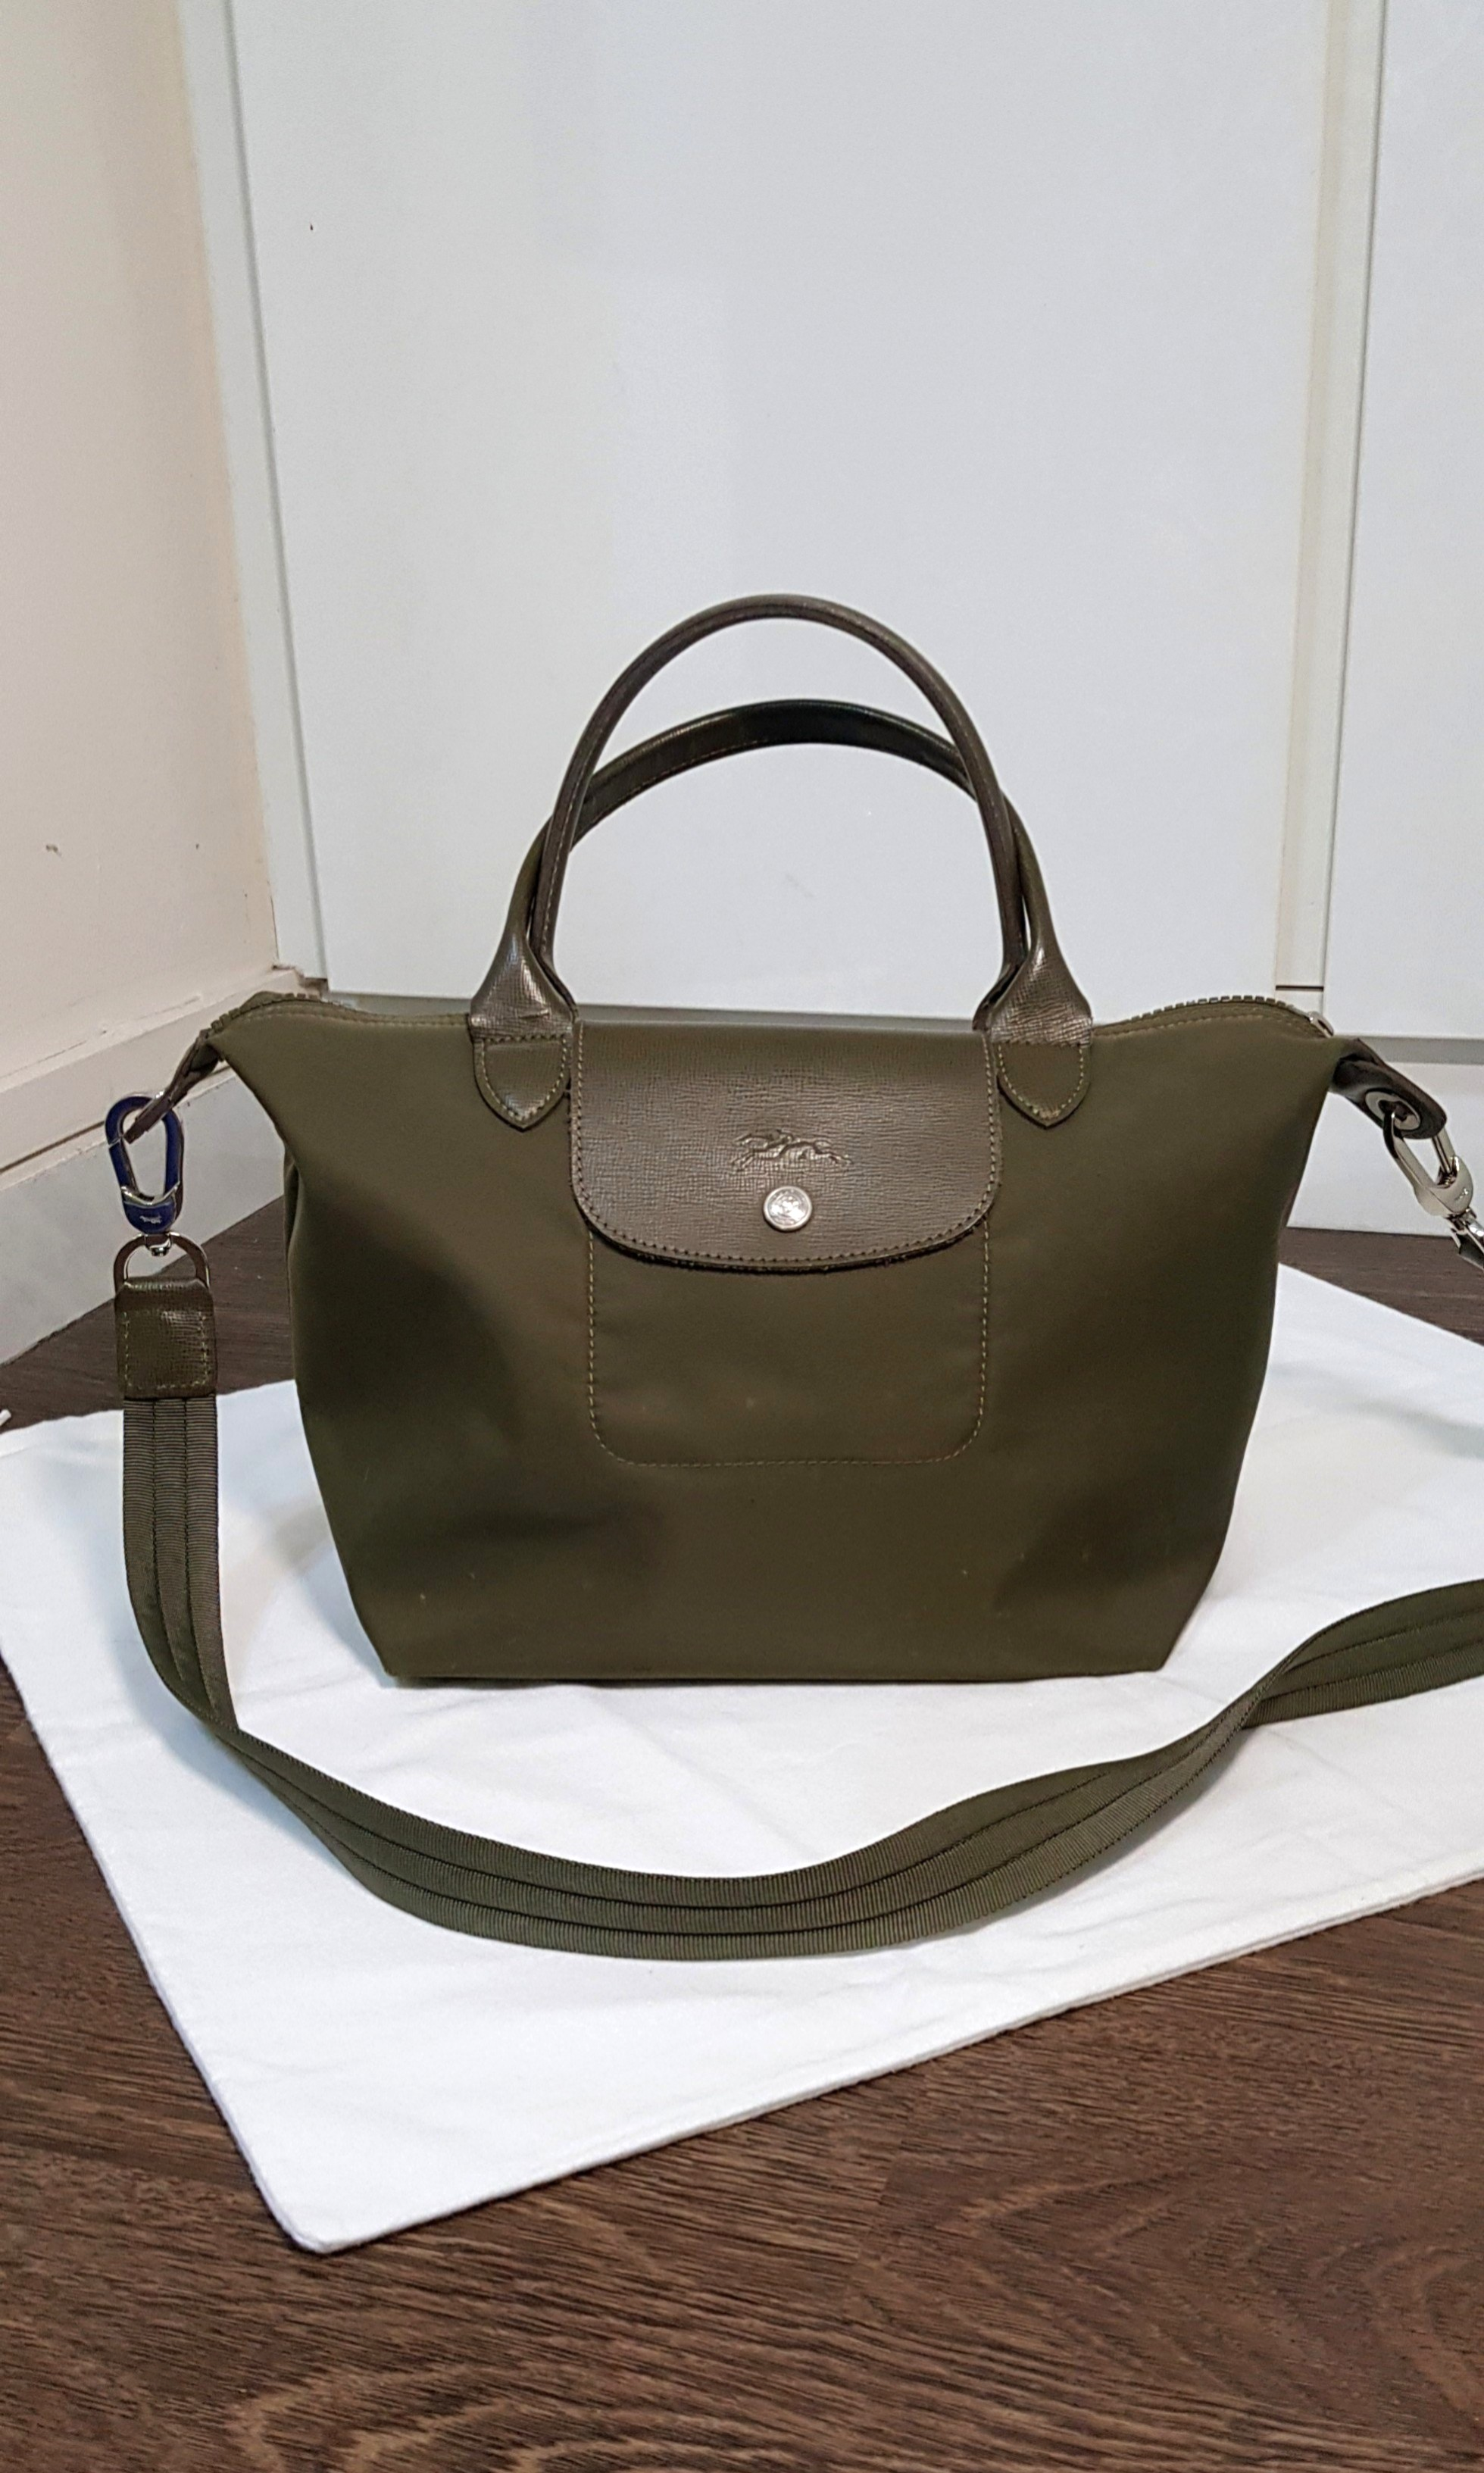 3c126dca80 Longchamp Neo small, Luxury, Bags & Wallets, Handbags on Carousell